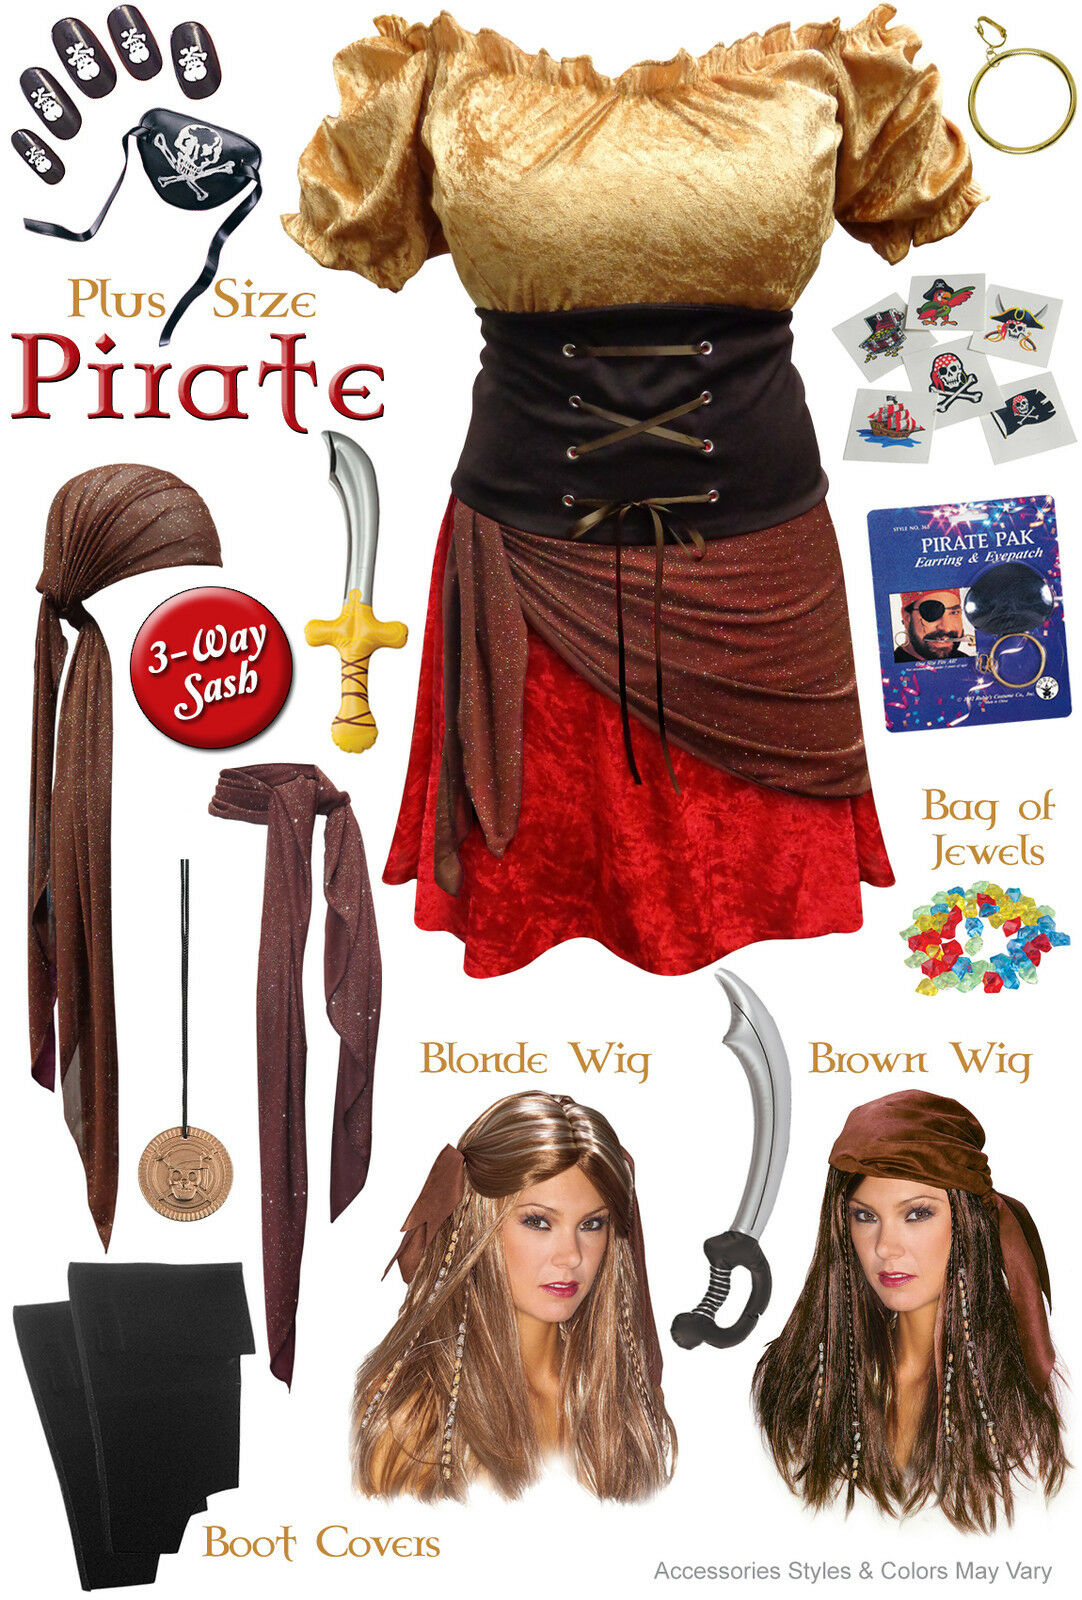 Sexy Pirate Plus Größe Costume Halloween Xl 0x 1x 2x 3x 4x 5x 6x 7x 8x 9x